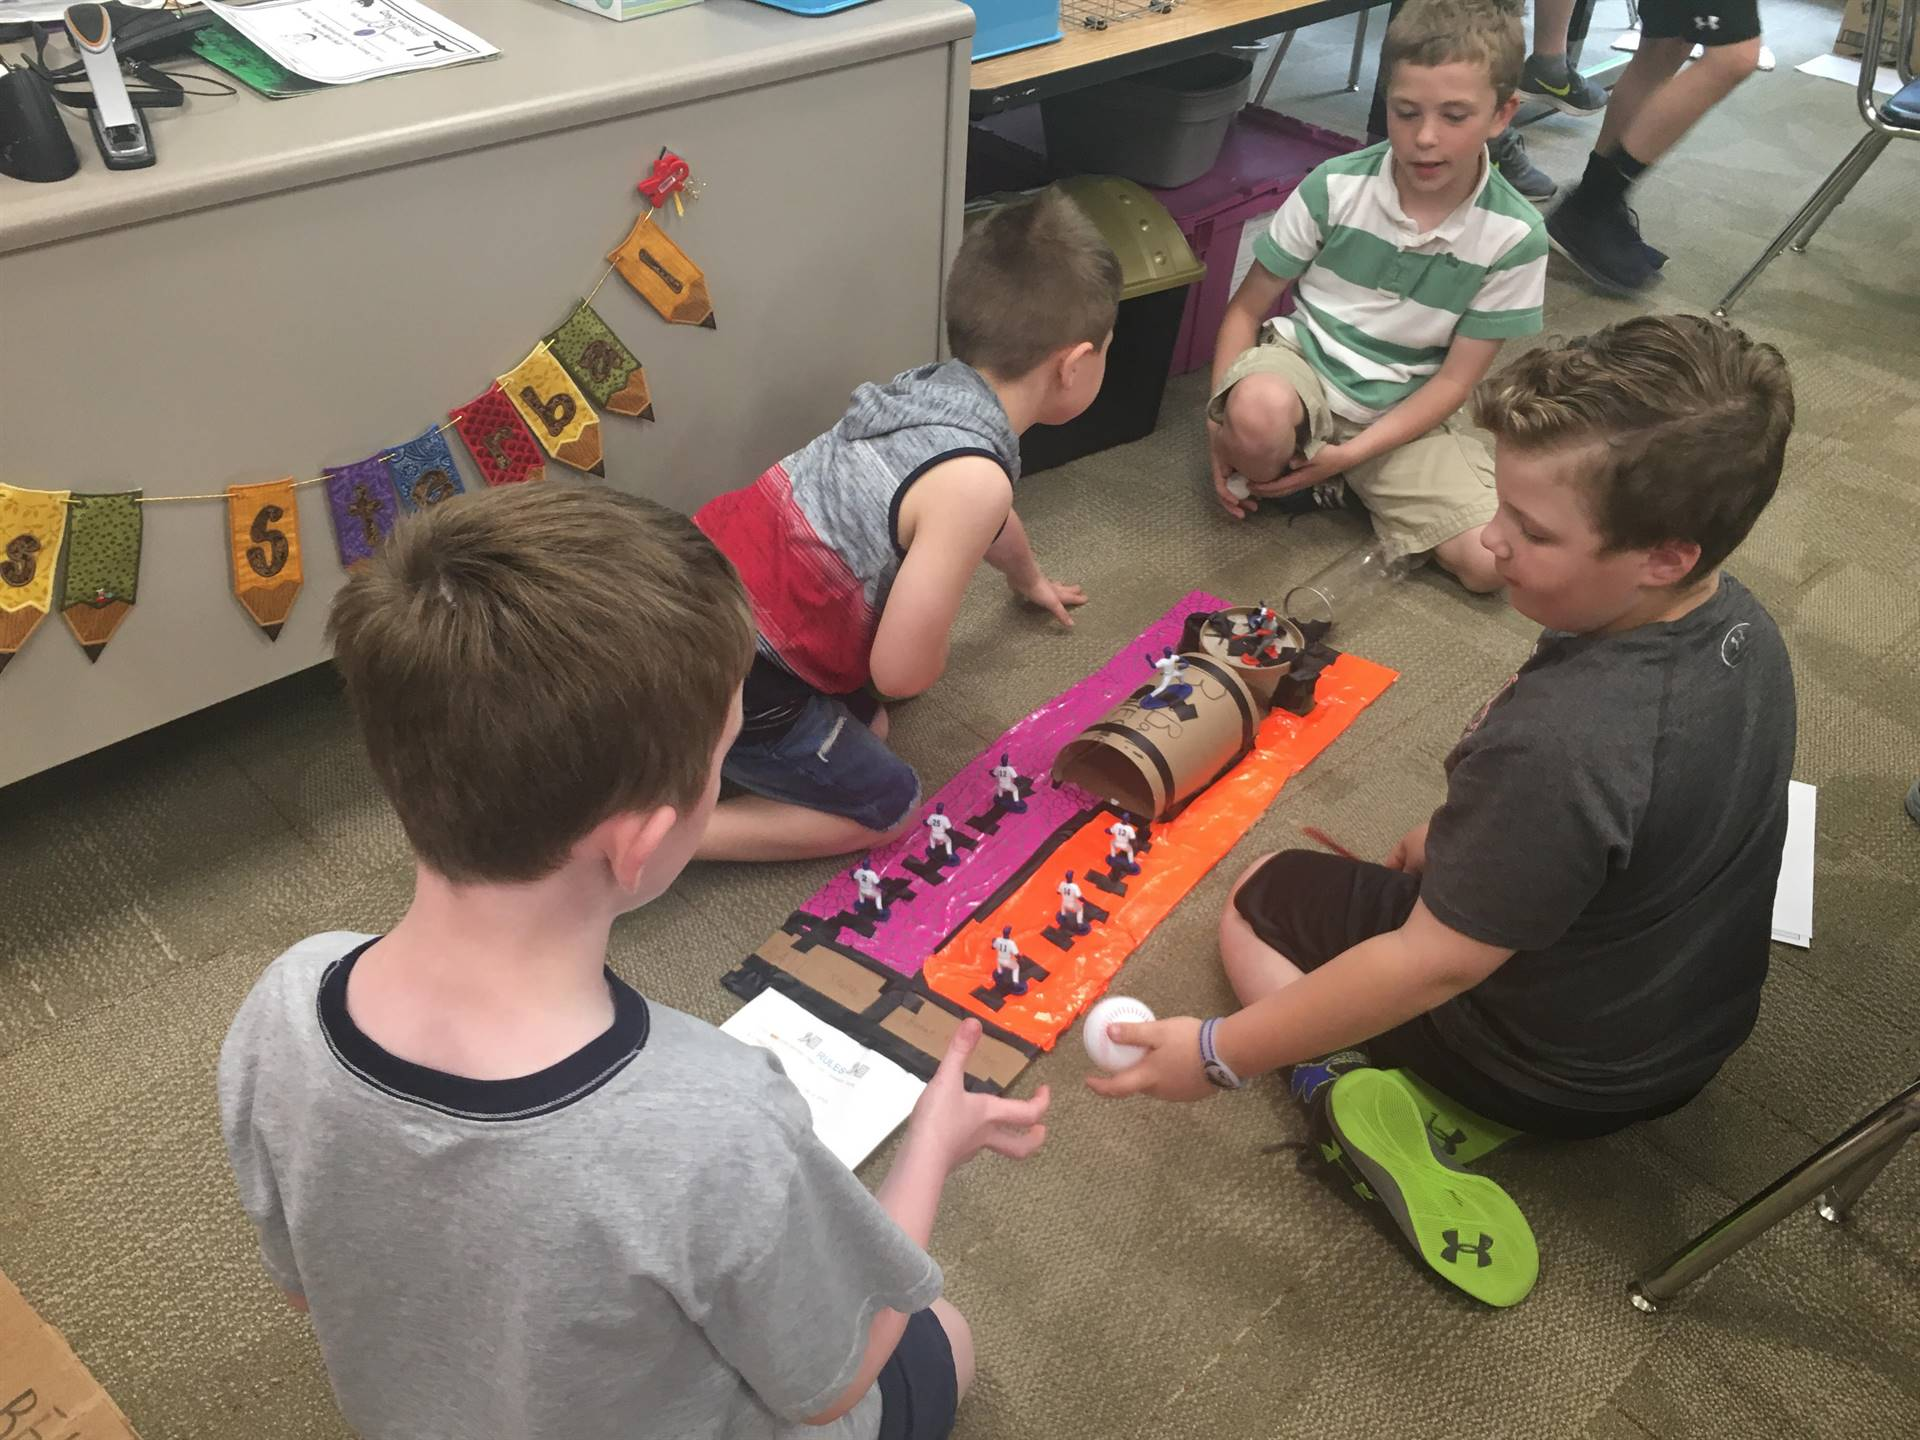 Third graders recycle cardboard to make arcade games